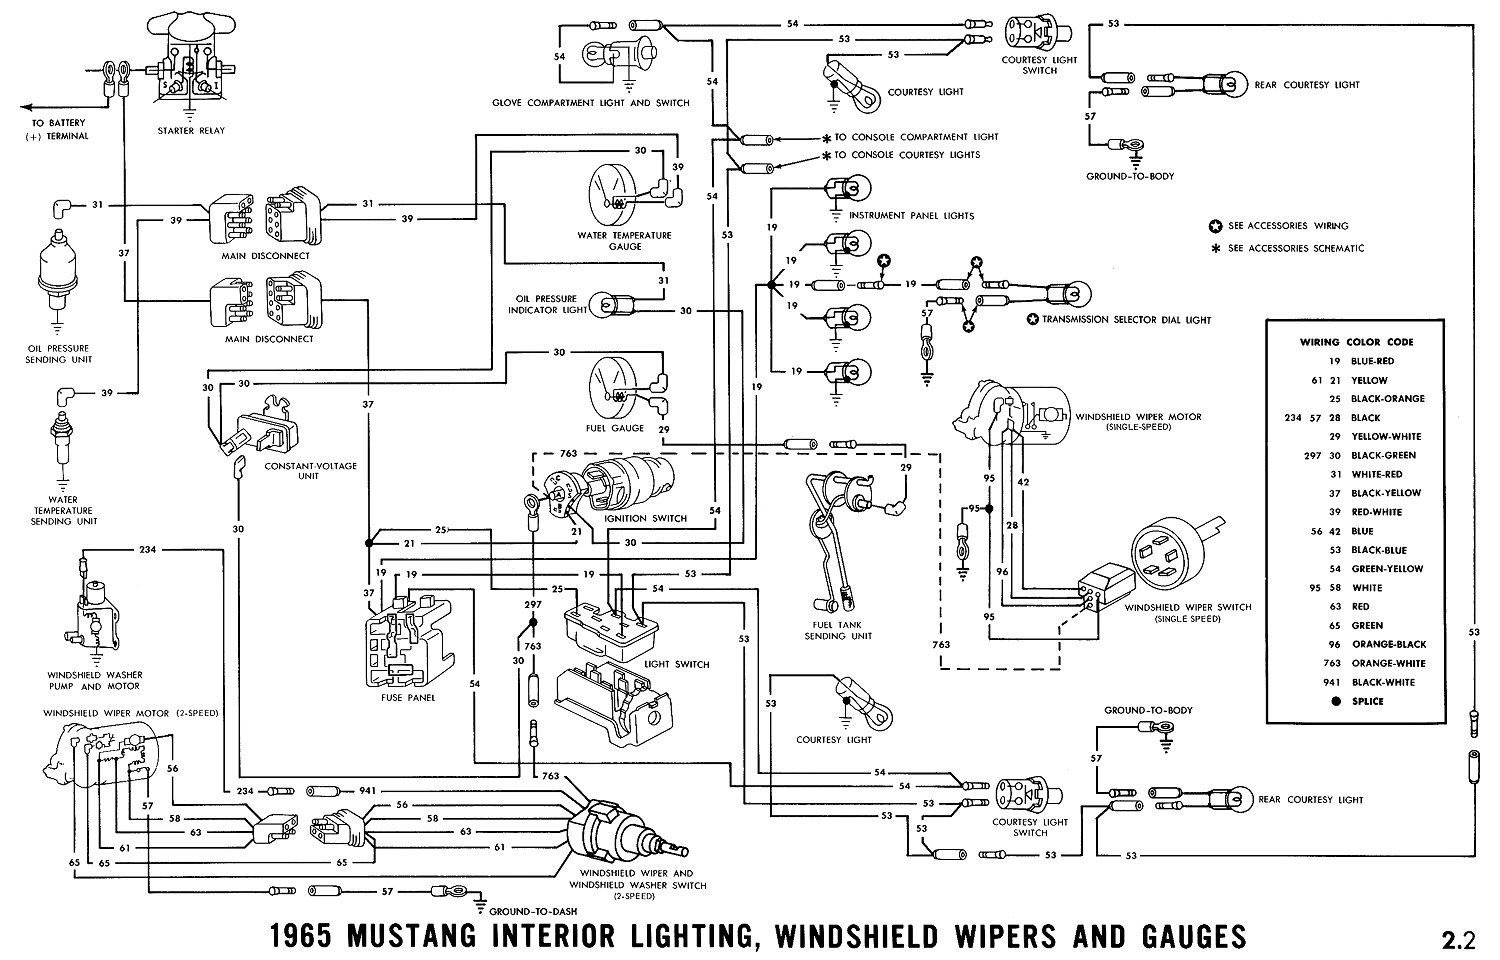 1965g 1965 mustang wiring diagrams average joe restoration 1965 ford mustang wiring diagrams at gsmx.co